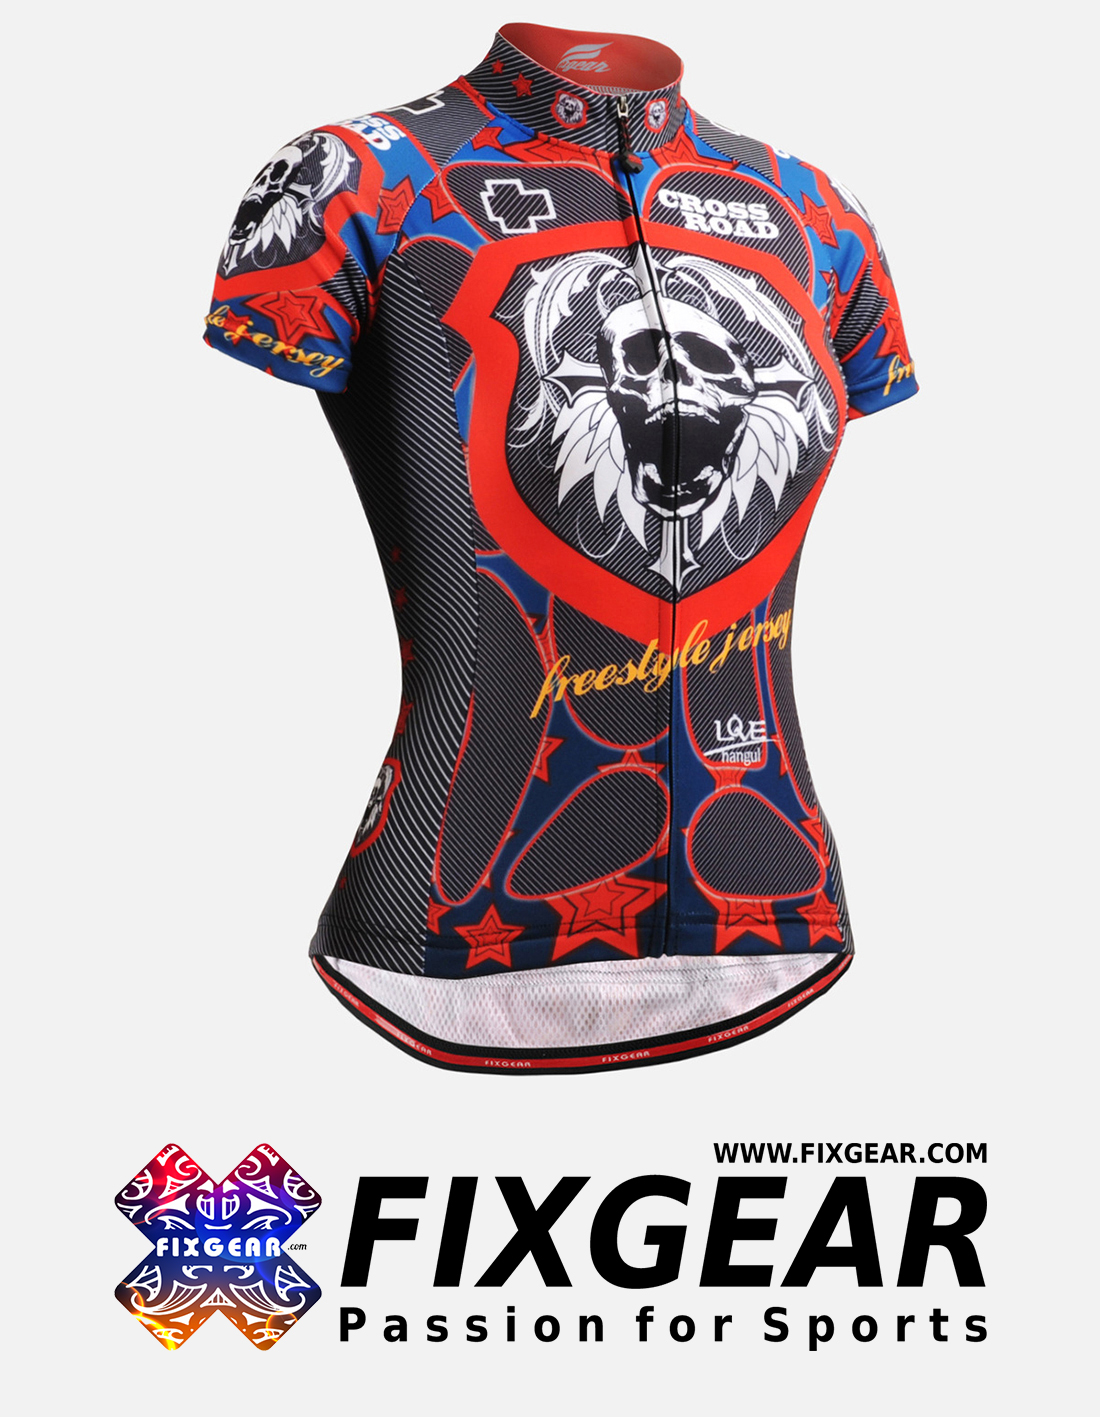 FIXGEAR CS-W1102 Women's Short Sleeve Jersey